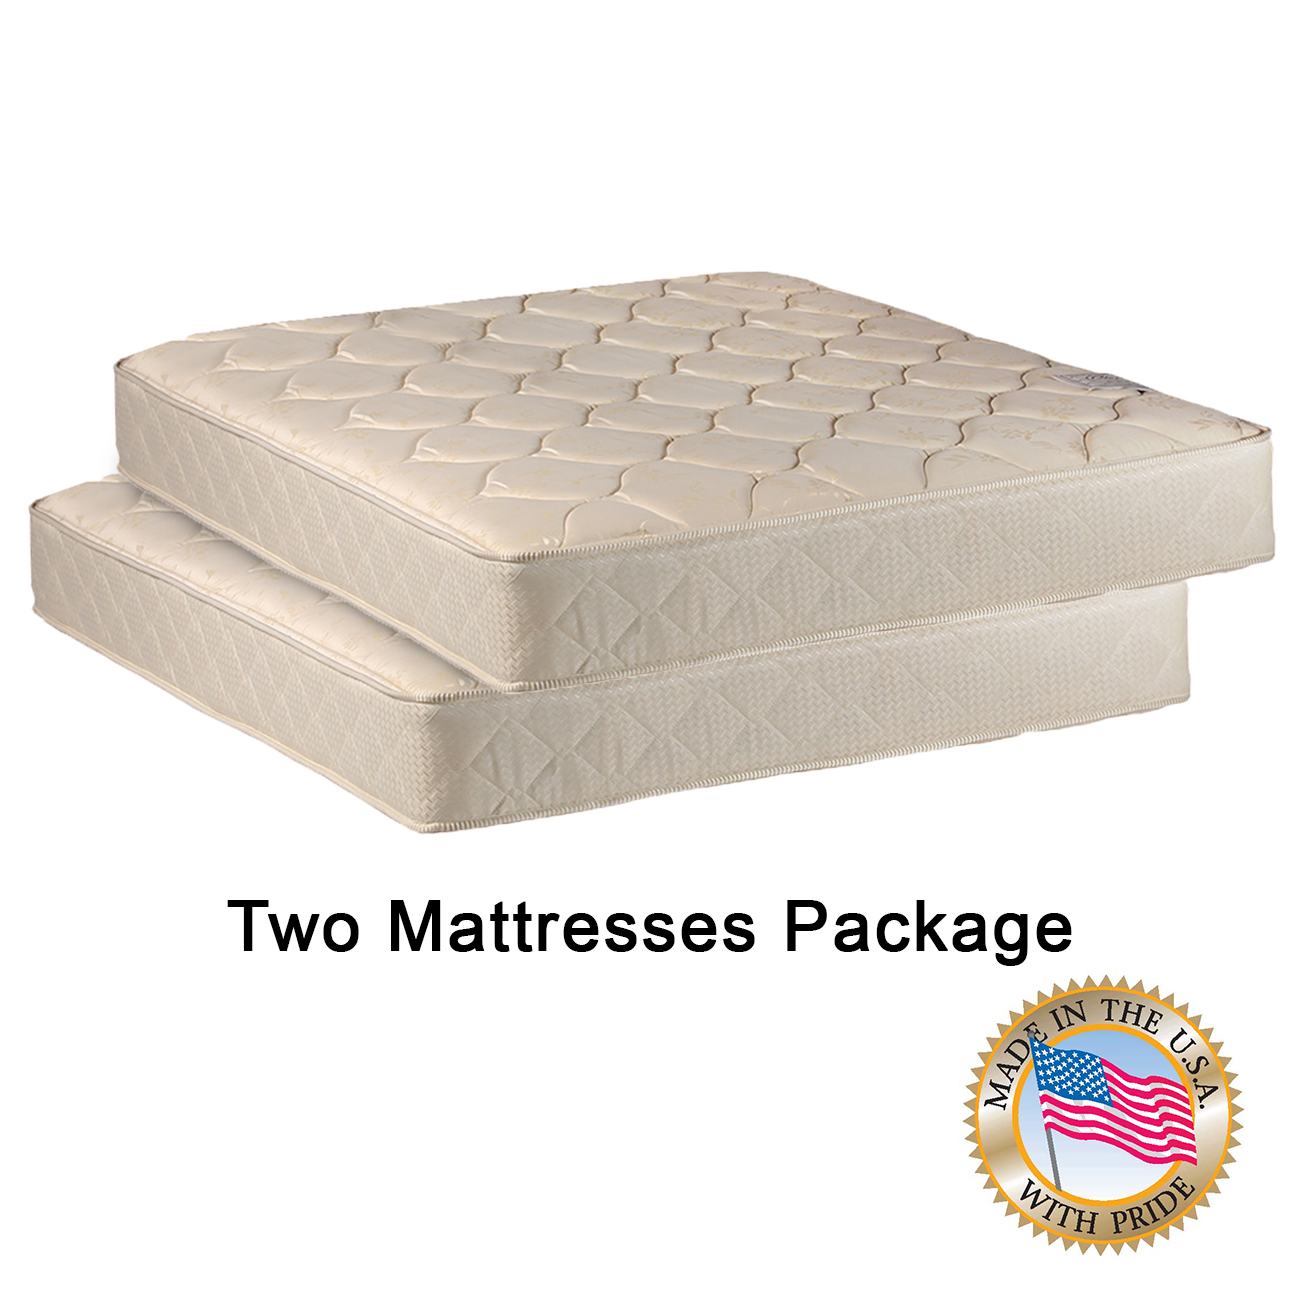 Two Twin Mattresses Package for Bunk Bed or Trundle Bed